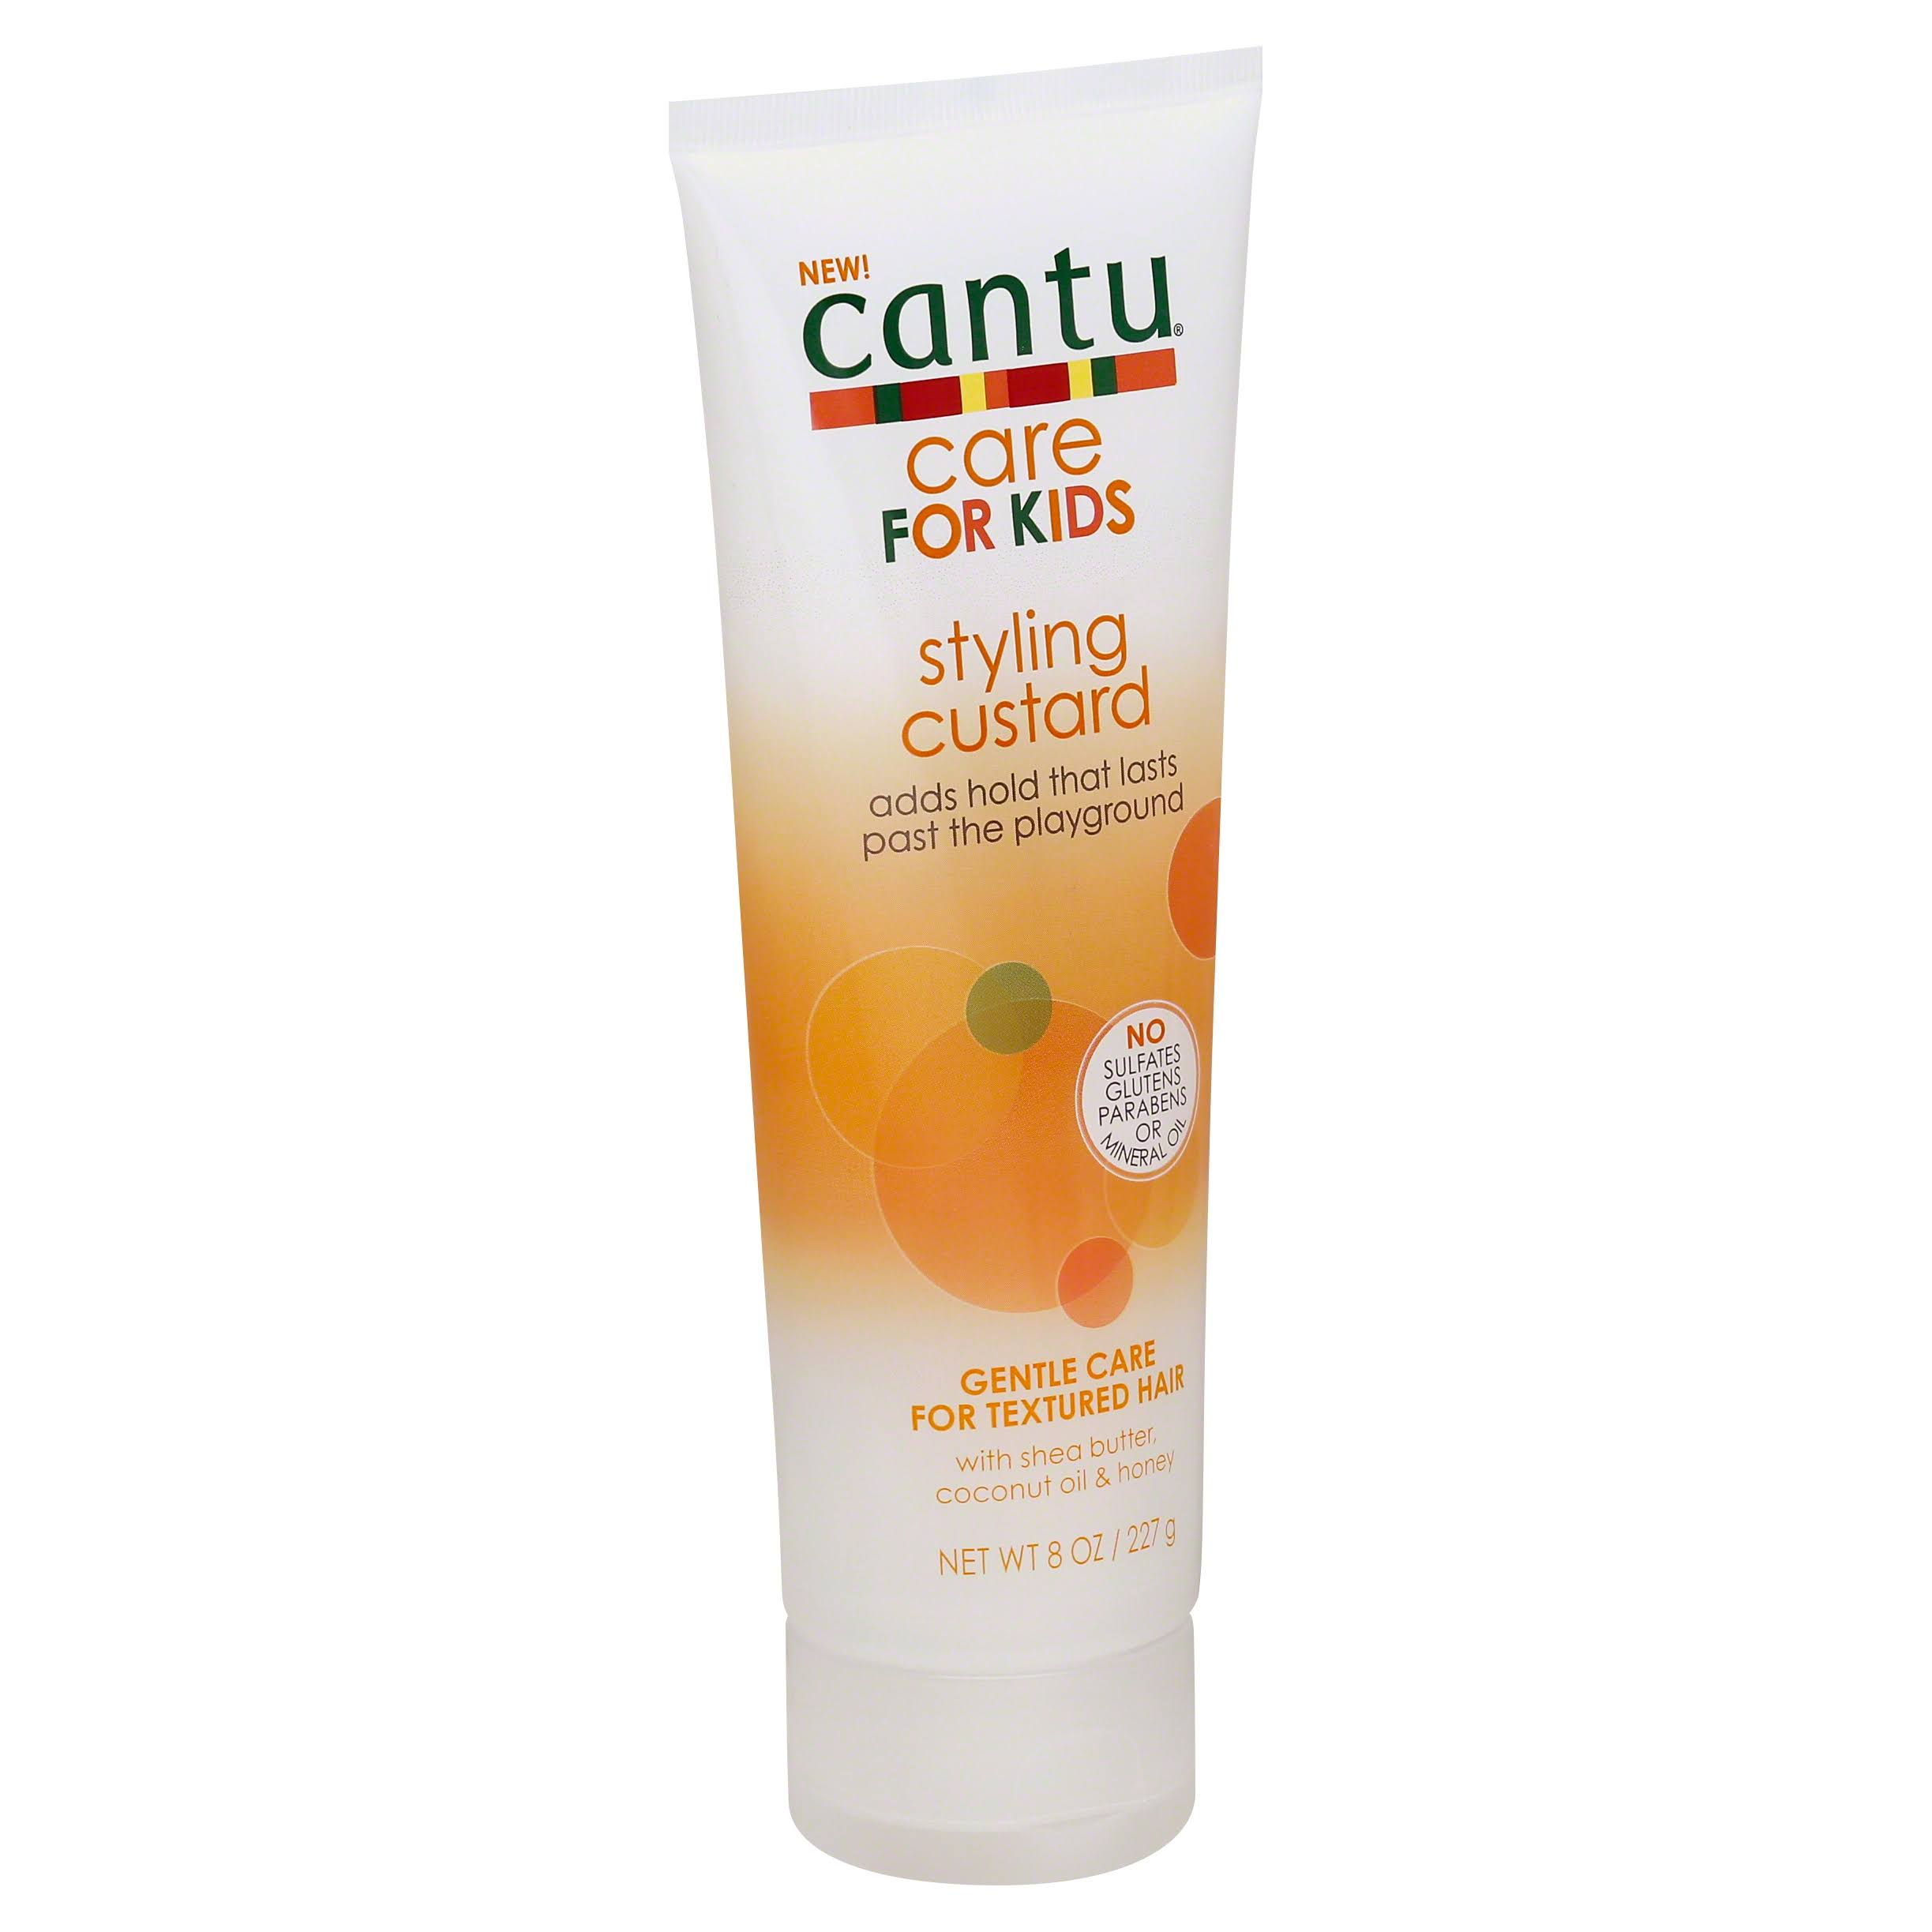 Cantu Care For Kids Styling Custard - 8oz